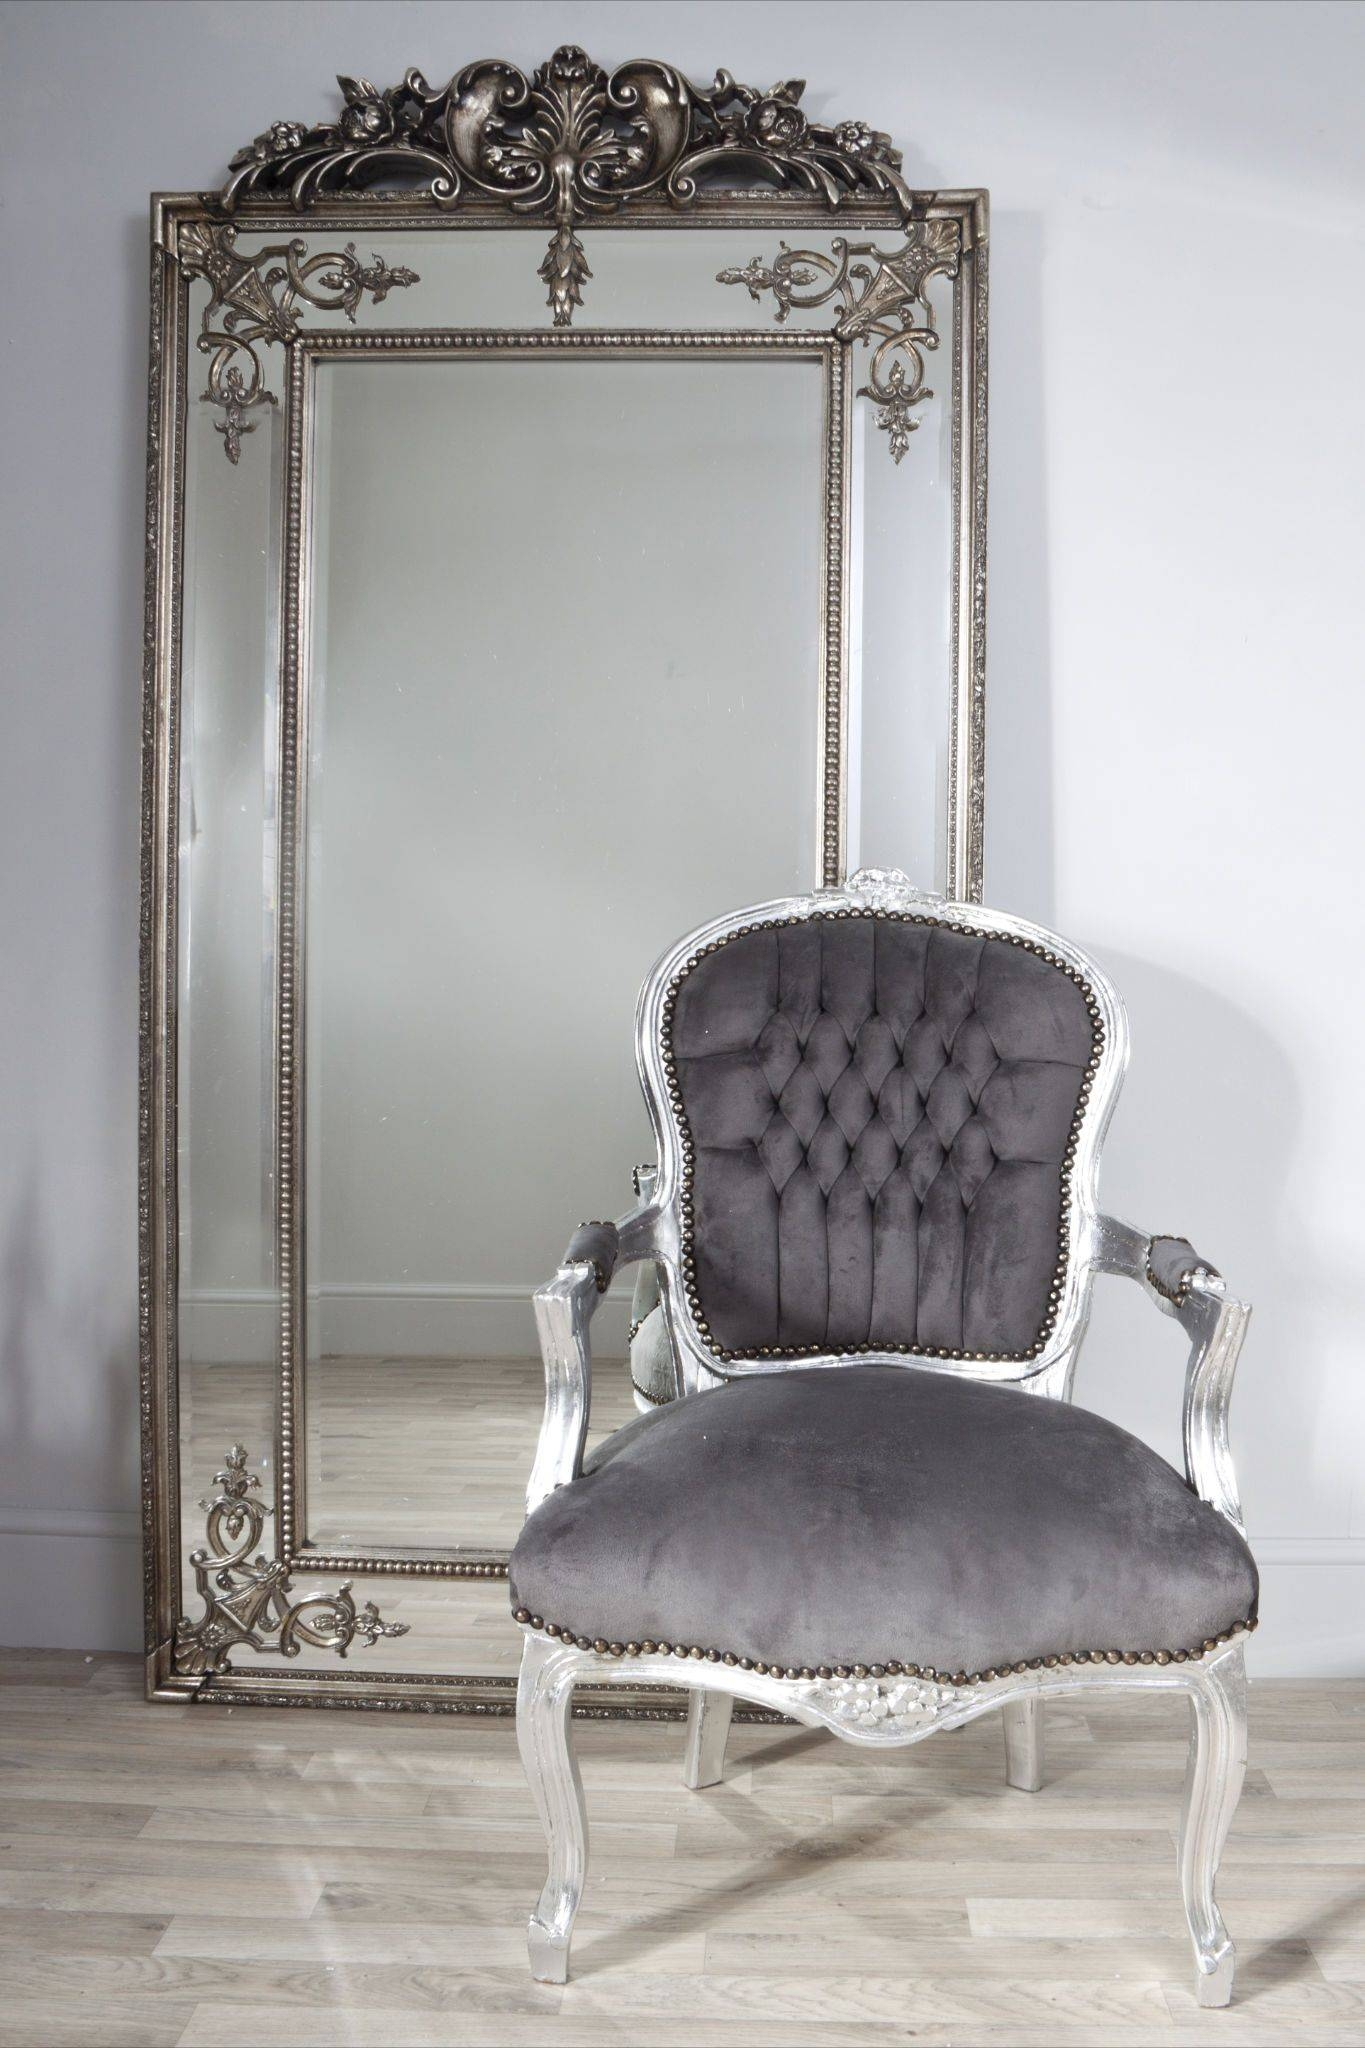 The Kinds Of Vintage Bathroom Mirrors Thementra pertaining to Vintage Large Mirrors (Image 12 of 15)